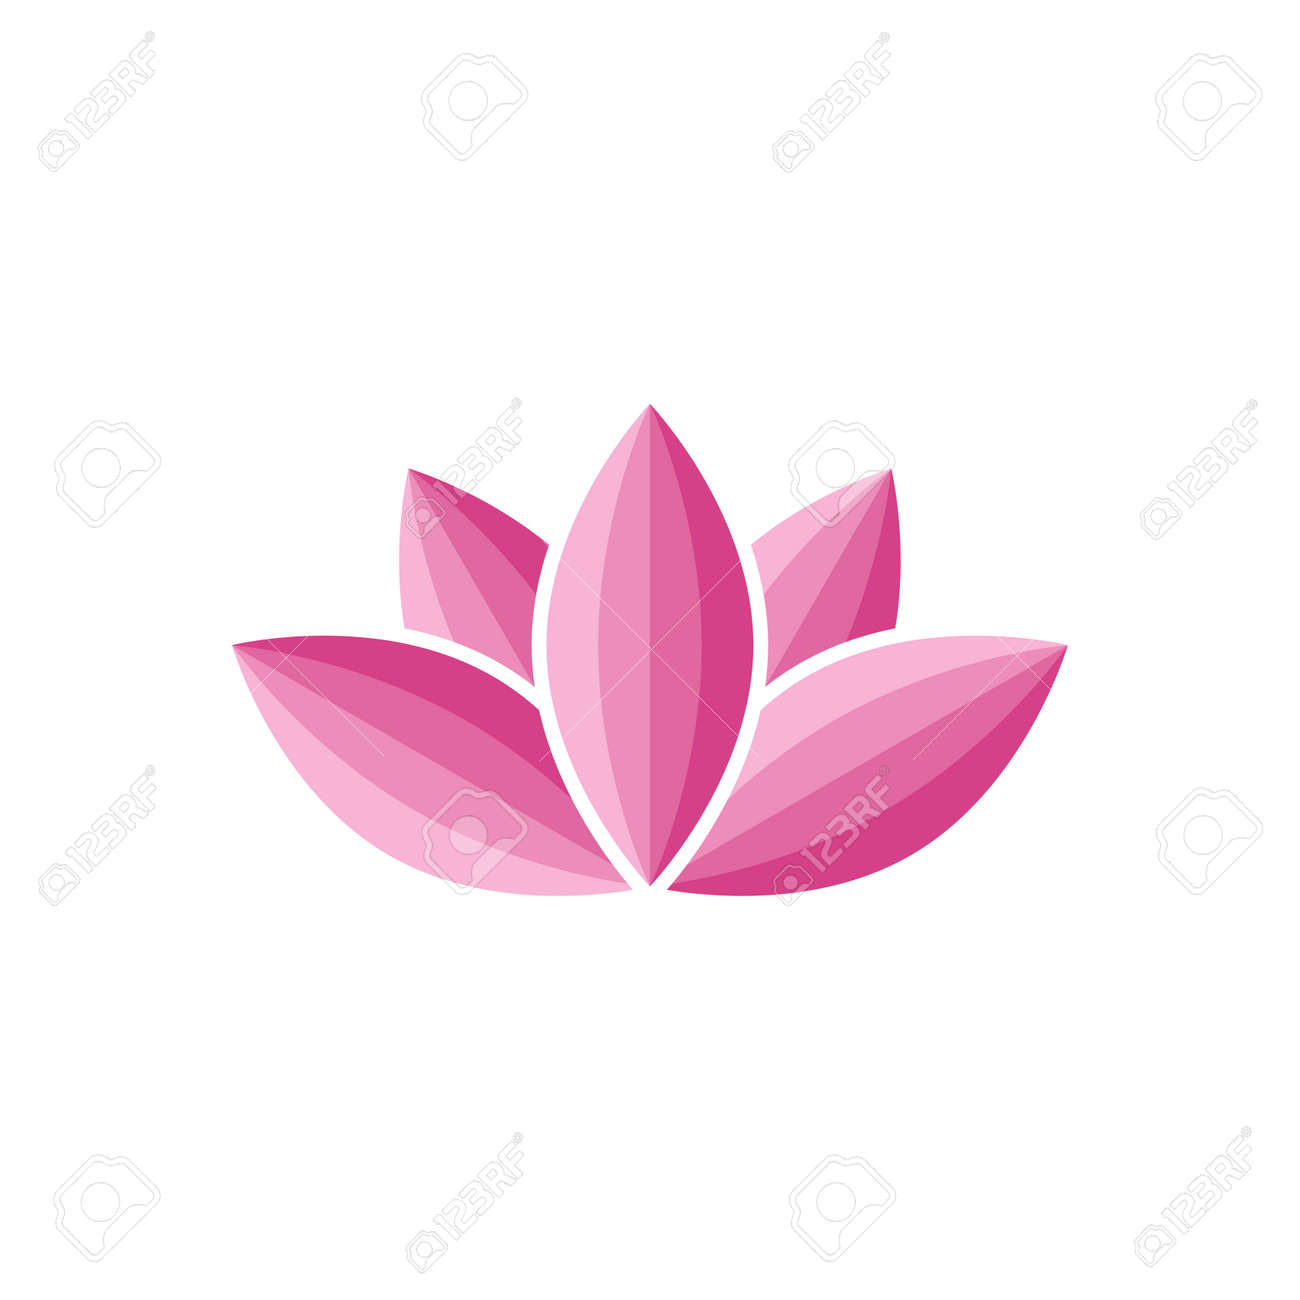 Lotus Flower Abstract Water Lily Silhouette Royalty Free Cliparts